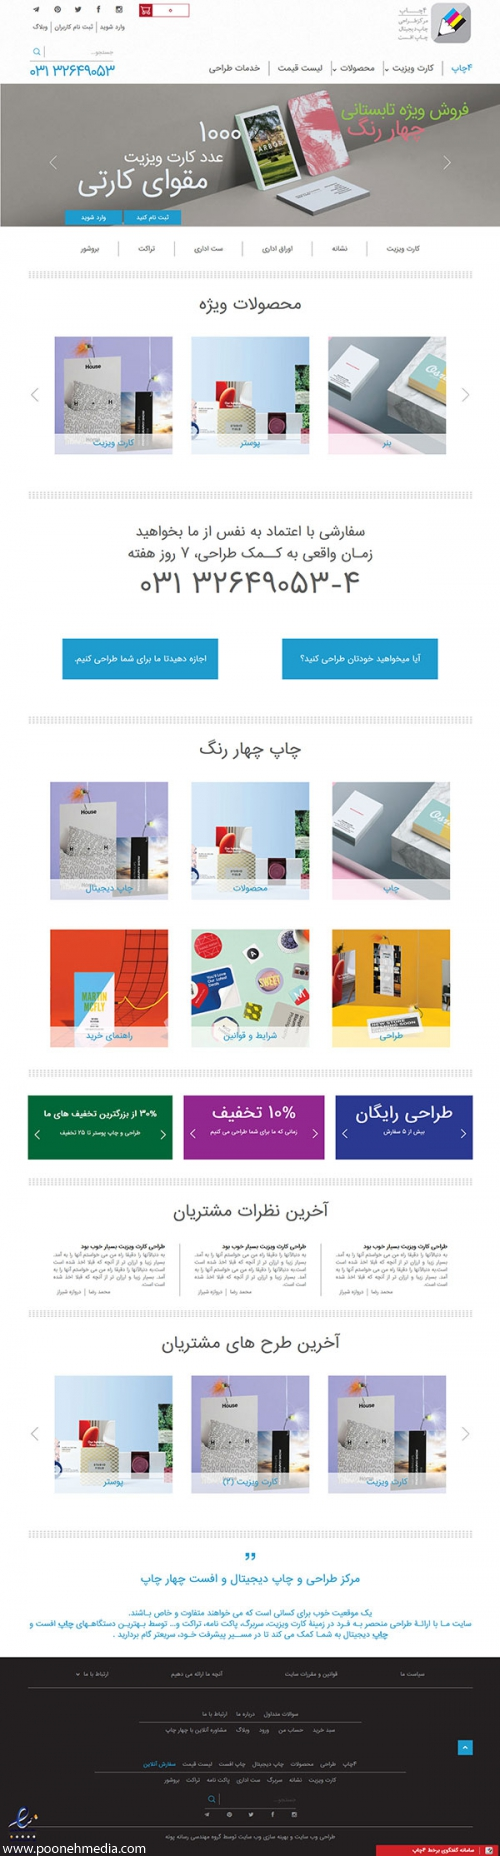 popular_articles-500x2228-39-1475481199-portfolio-www-4chap-com طراحی وب سایت کارخانه